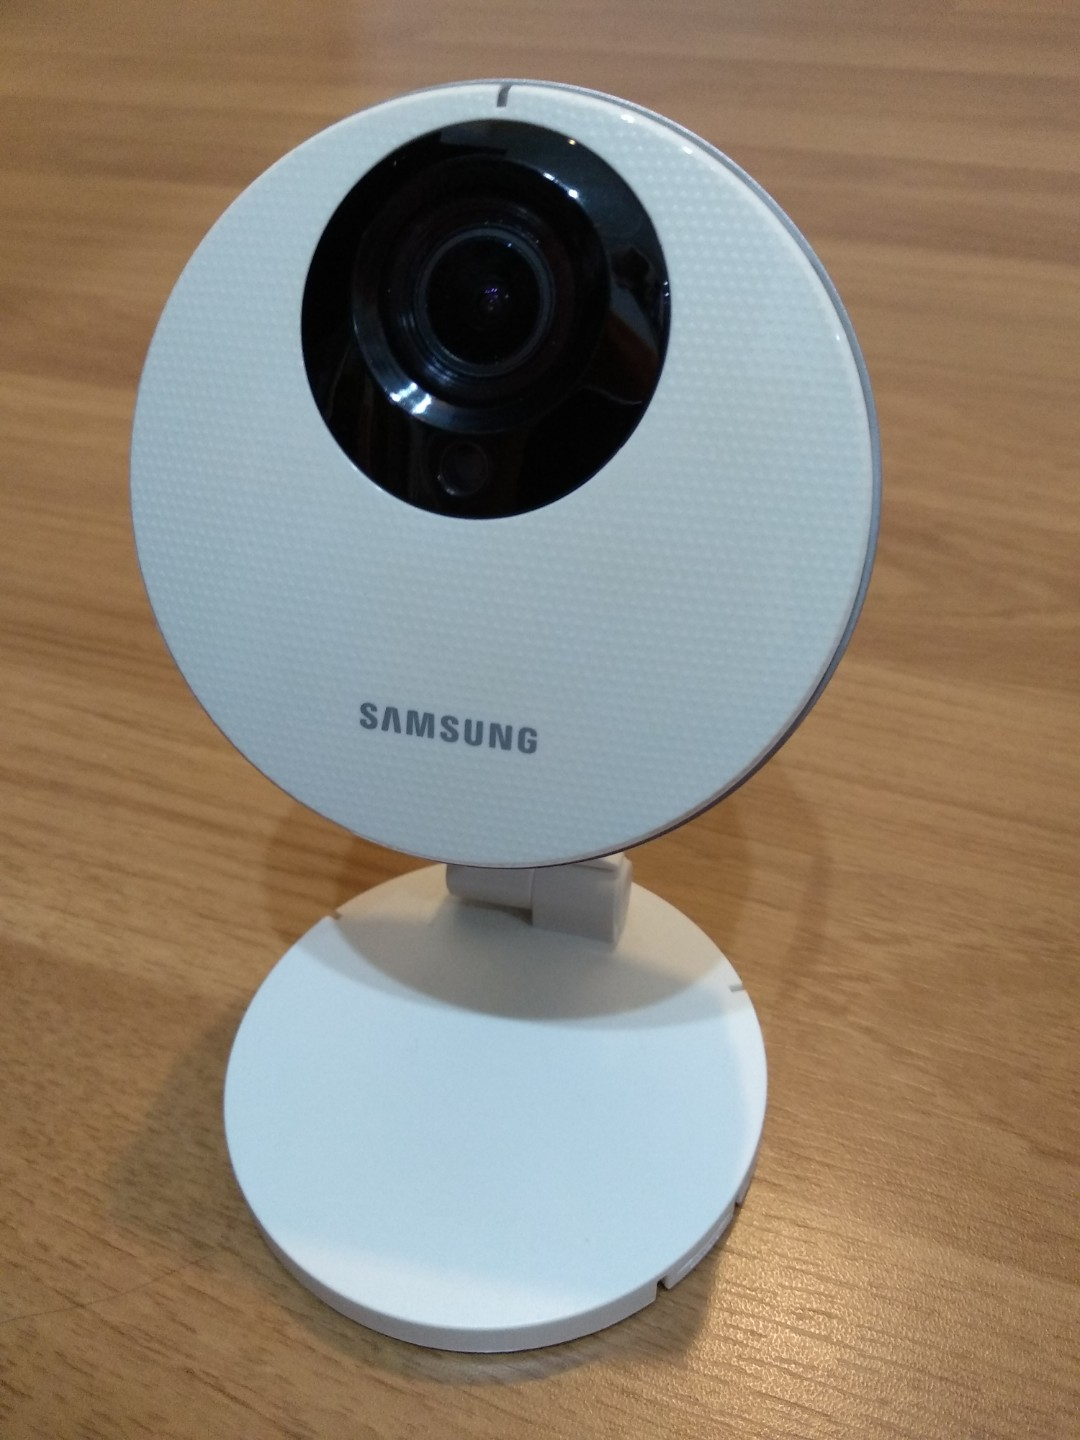 Ssmsung Smartcam Snh P6410bn Ip Camera Cctv Electronics Computer Samsung Parts Accessories On Carousell